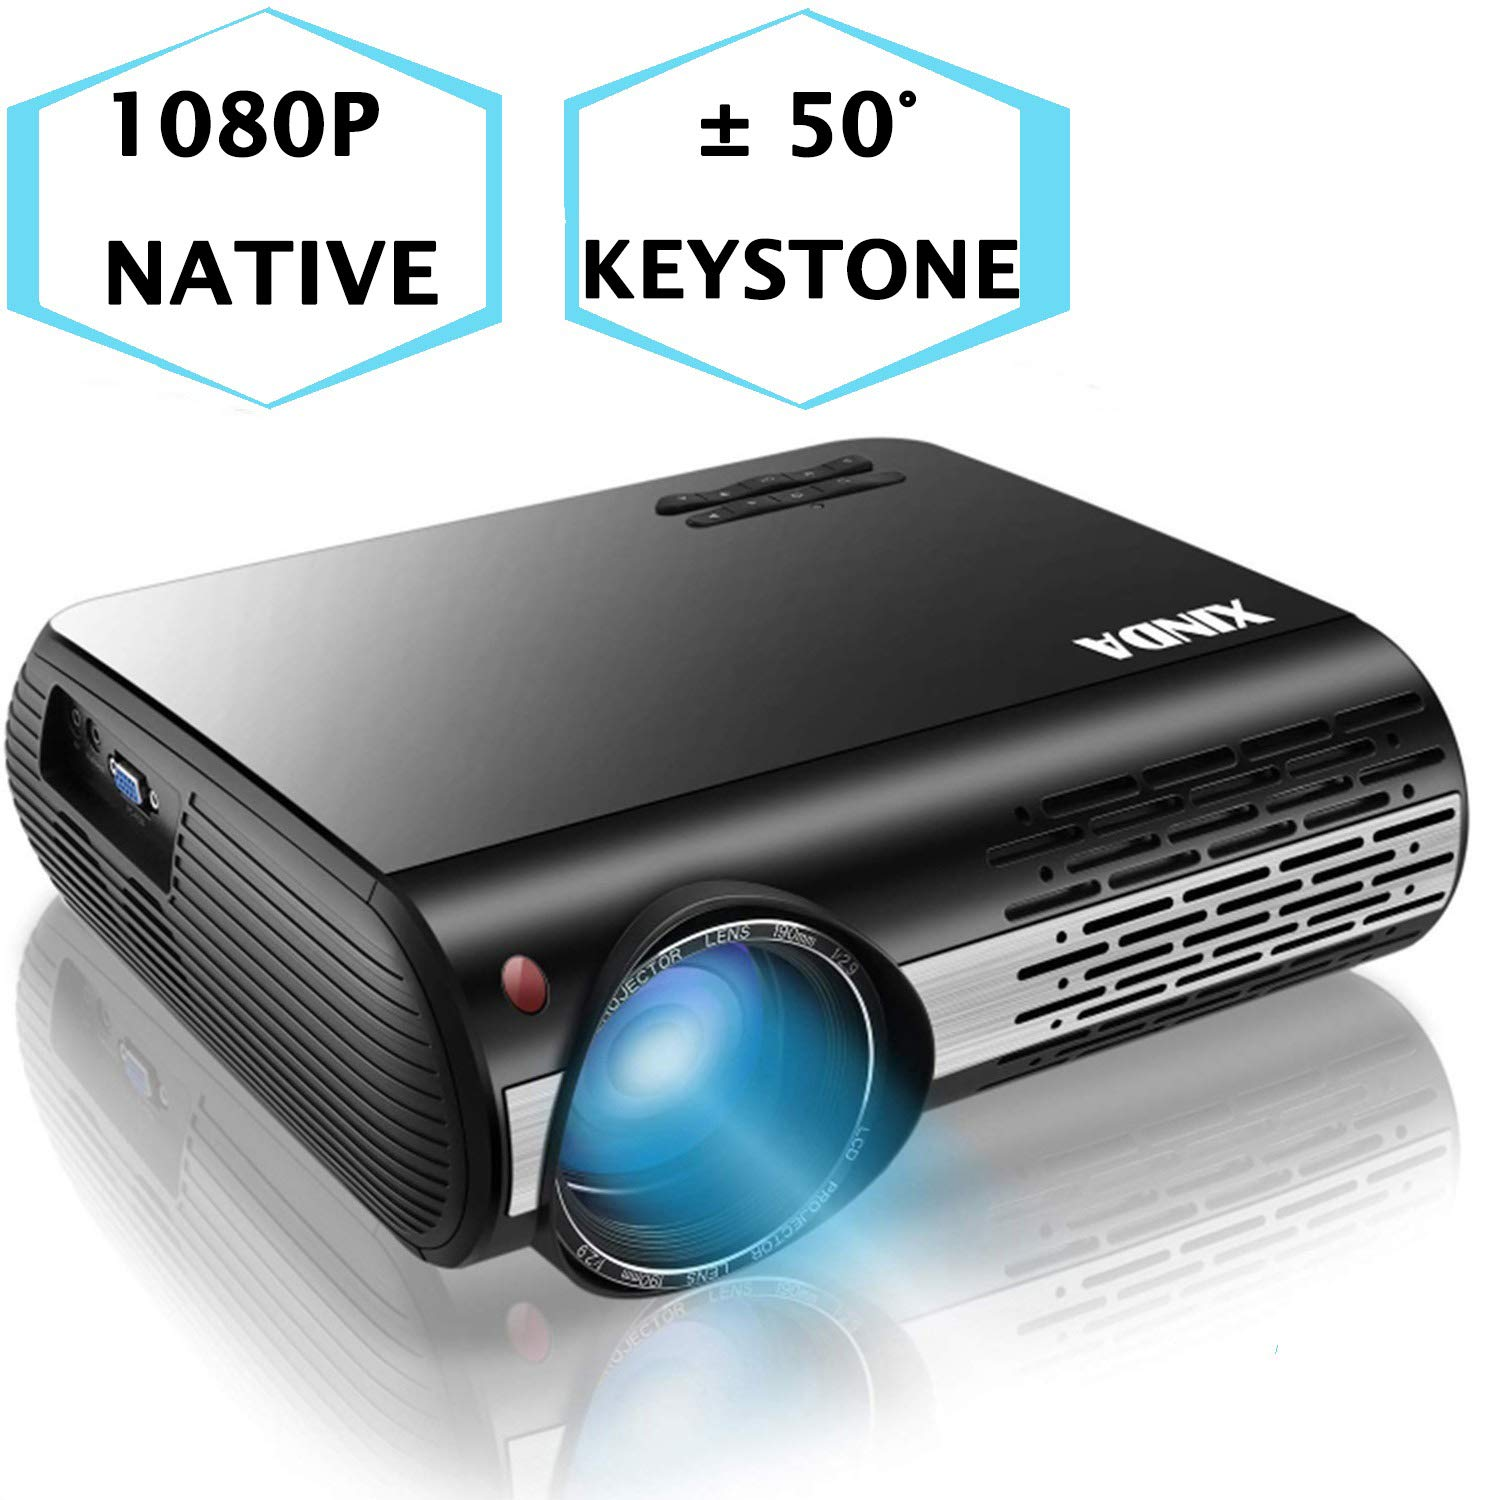 1080P Projector,XINDA 5000 Lux Native HD 1080P Projector with 327'' Display,4D Home Theater Projector with Builtting in 5W Speaker,Home& Business Projector for Fire TV Stick,Smartphone,PC,Box,PS4,2HDMI